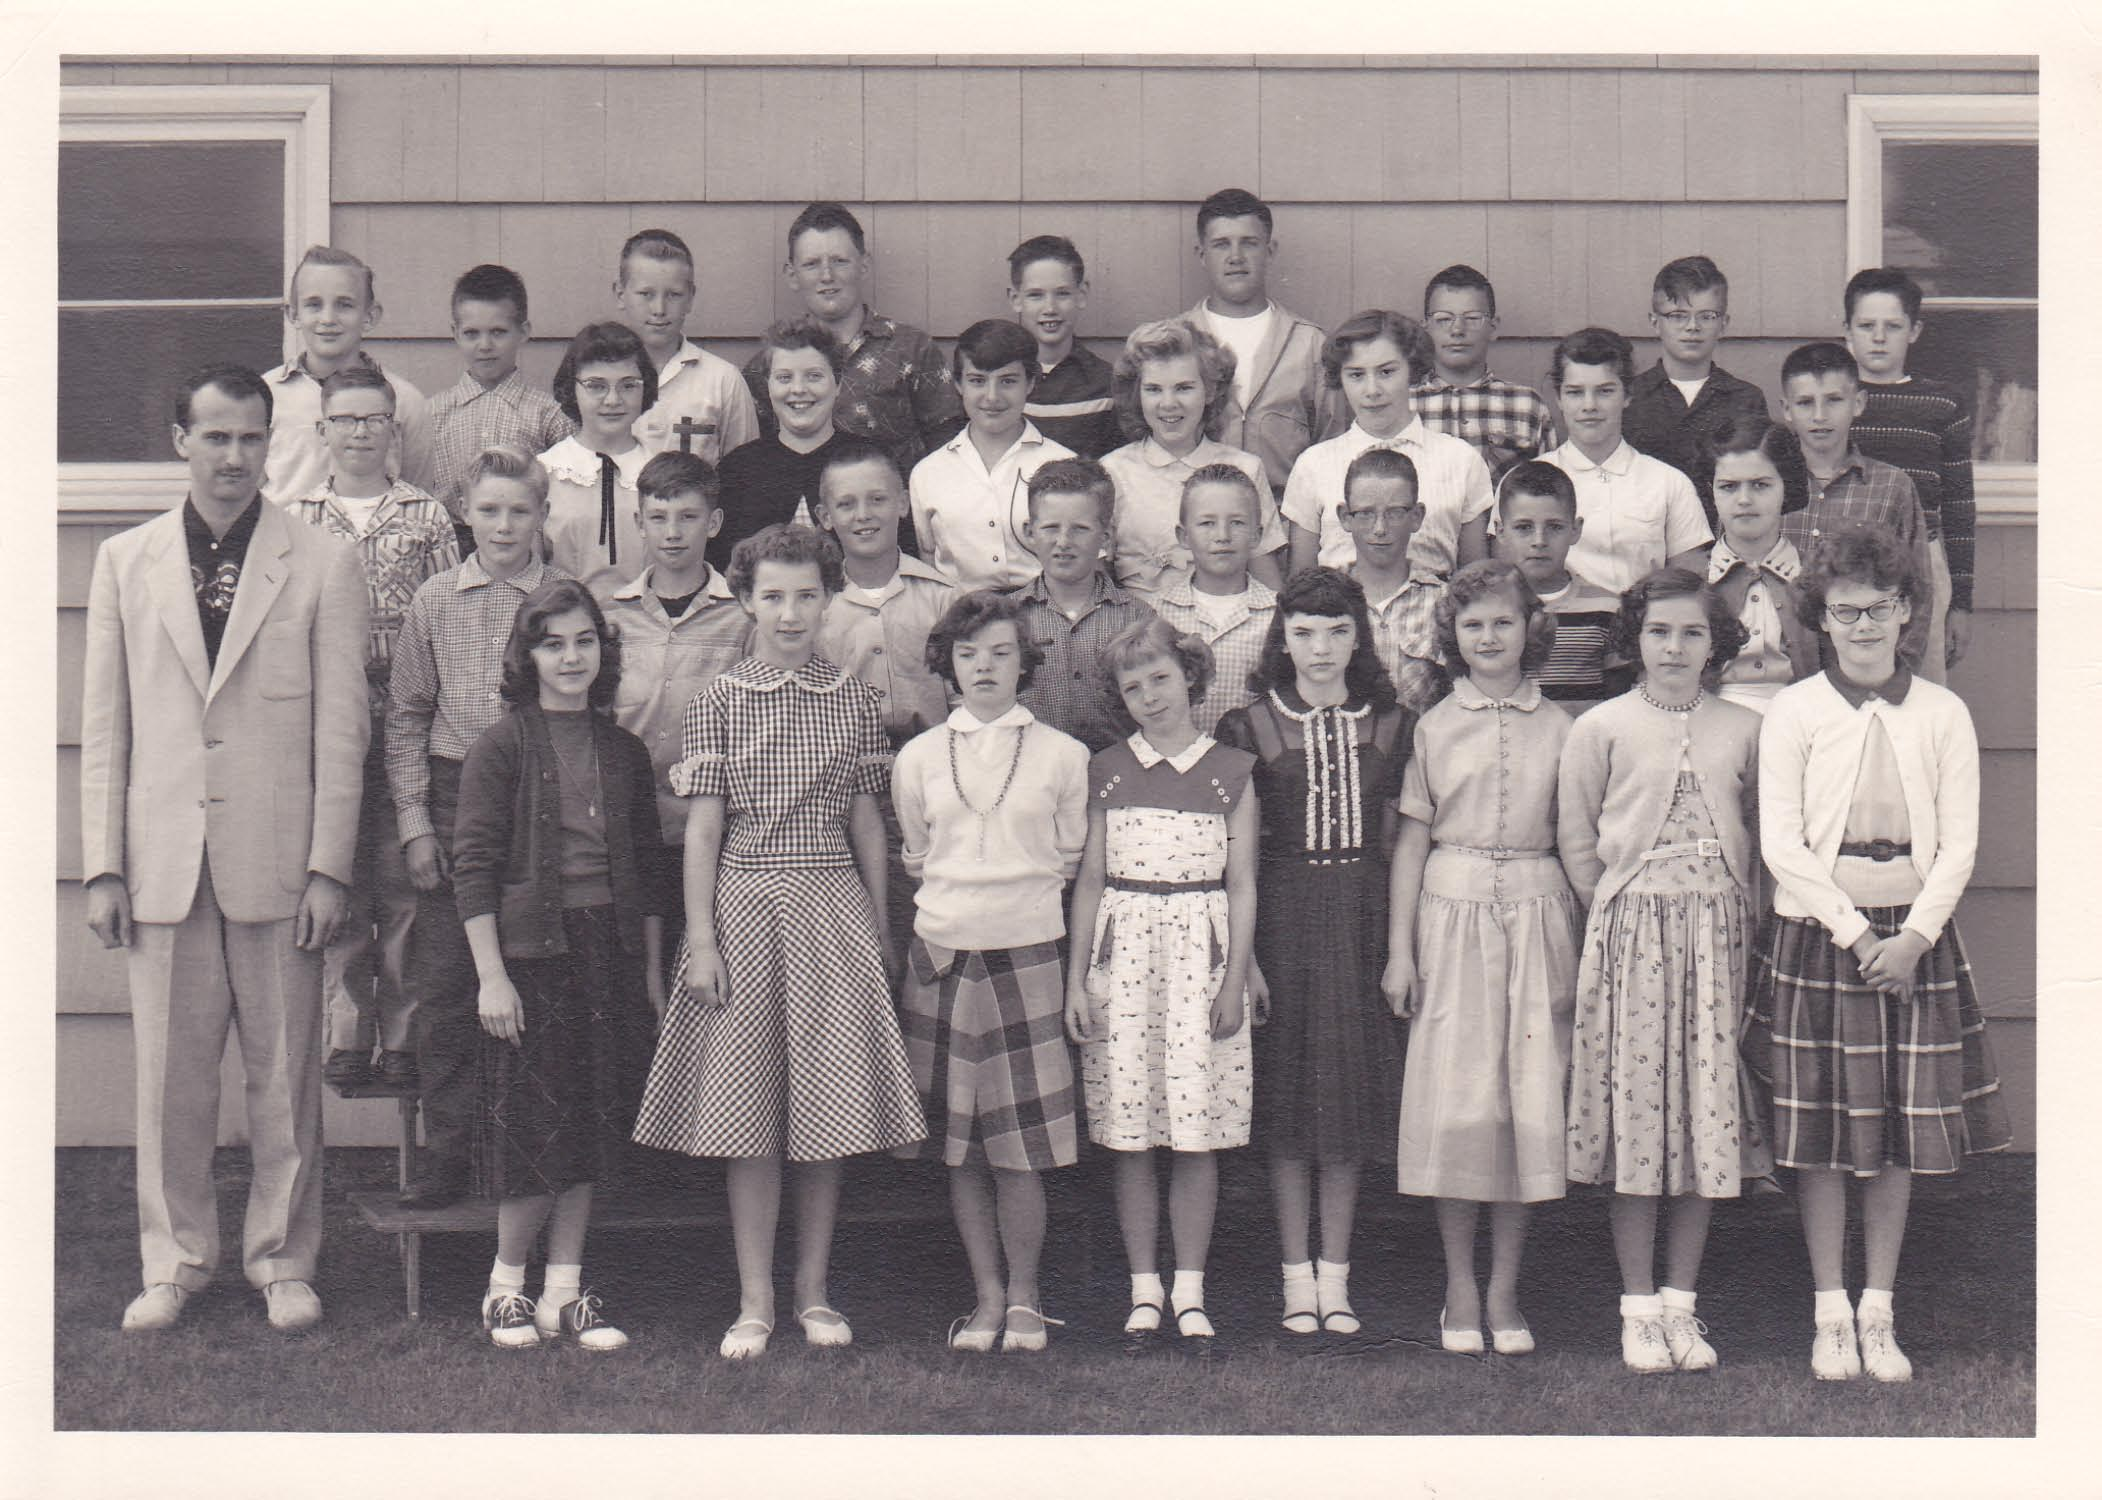 Vintage Yearbook photo - class of 1962 as 5th Grade Students